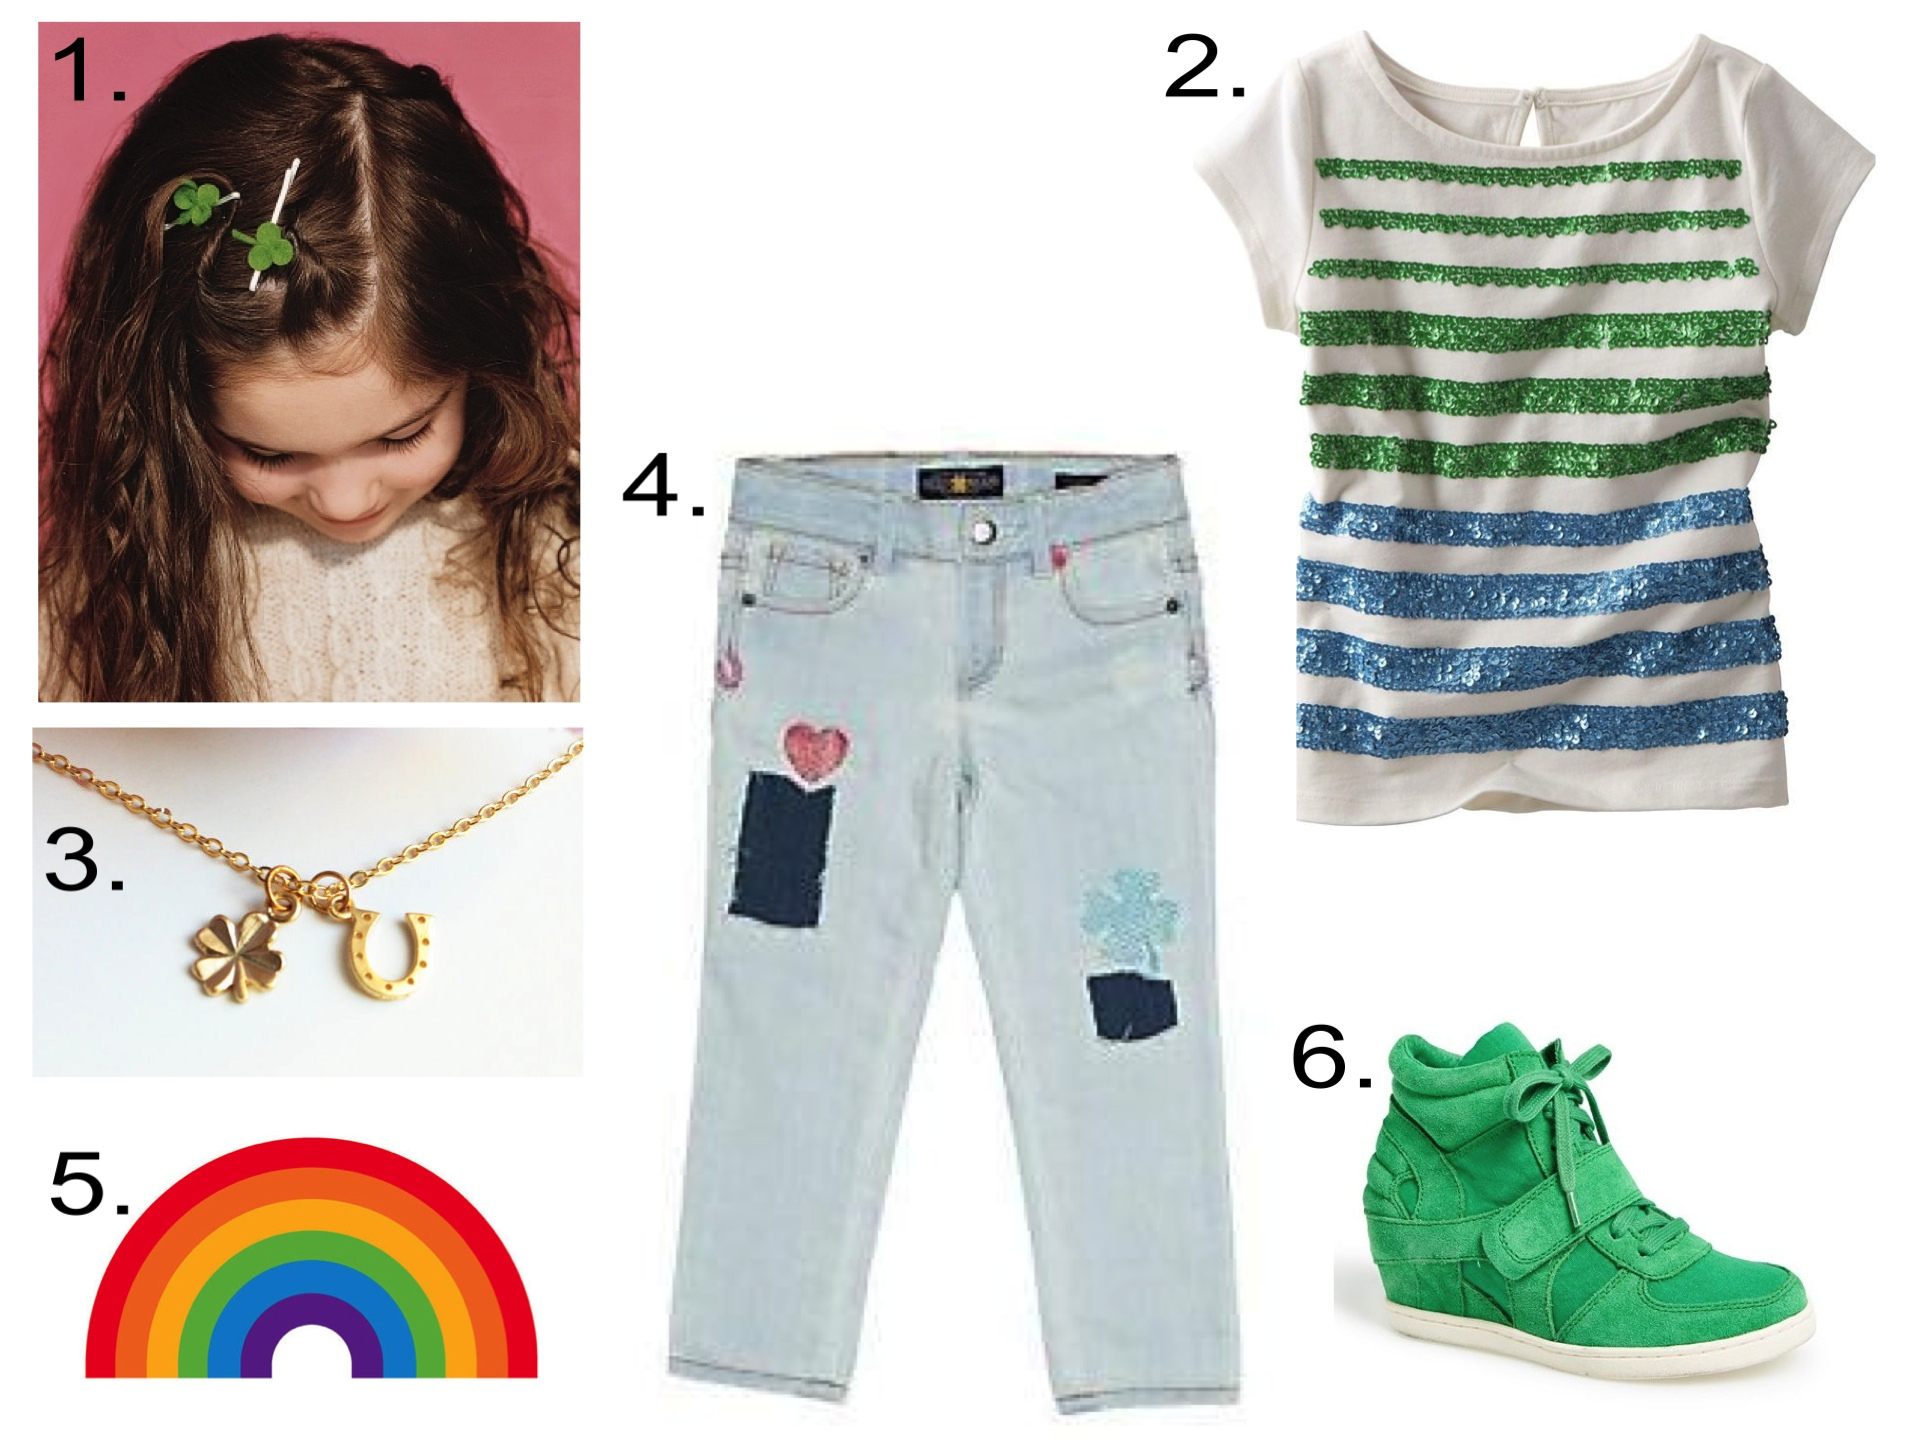 For your Little Lady Luck...  1.  Martha Stewart Clover Hair Pin  | 2.  OshKosh B'Gosh SEQUINED STRIPED TEE  | 3. PinkChemistry Lucky Horseshoe &4 Leaf Clover Necklace |4.  Lucky Brand CATE PATCHWORK  |5.  Tattly Rainbow Temporary Tattoo  |6. Ash 'Babe' Sneaker